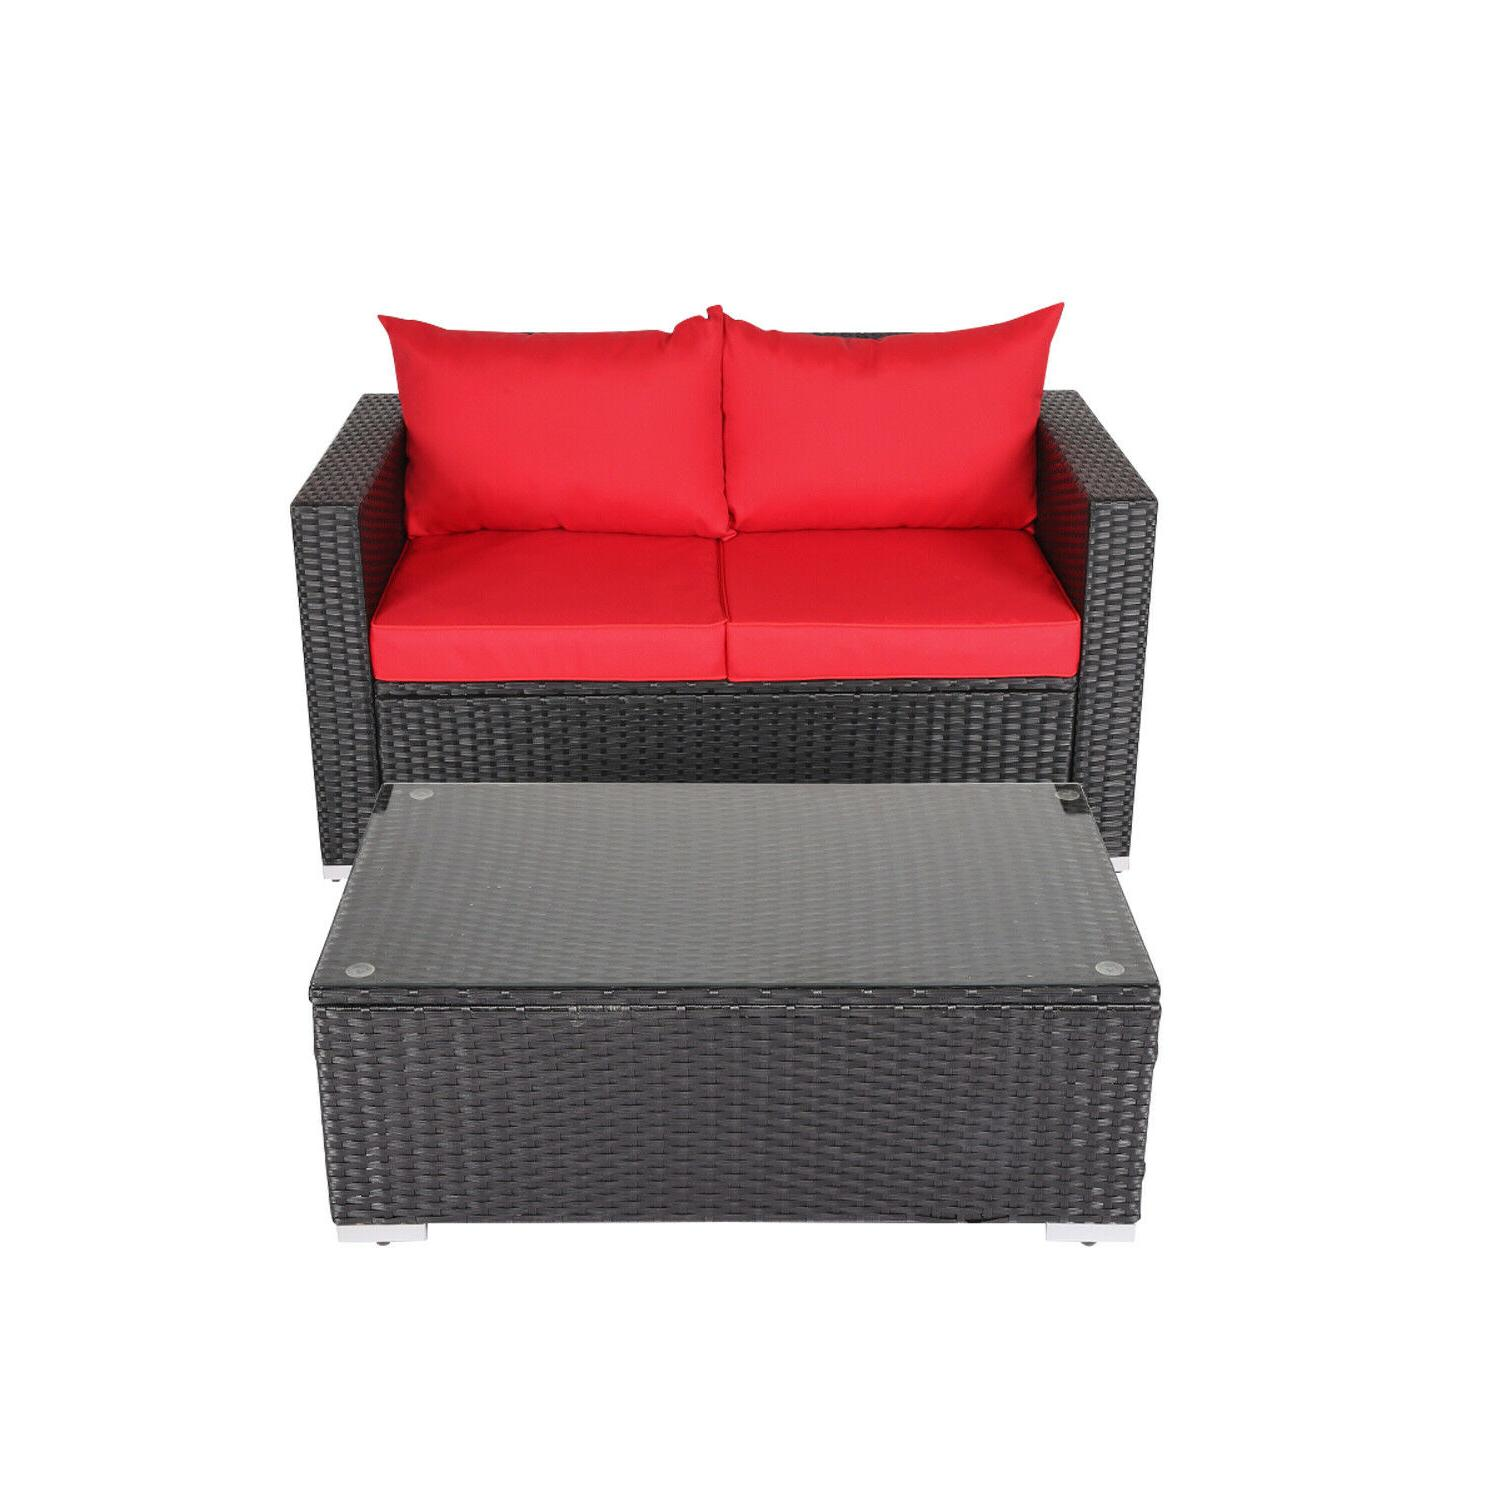 4PC Set Cushioned Couch Garden Patio